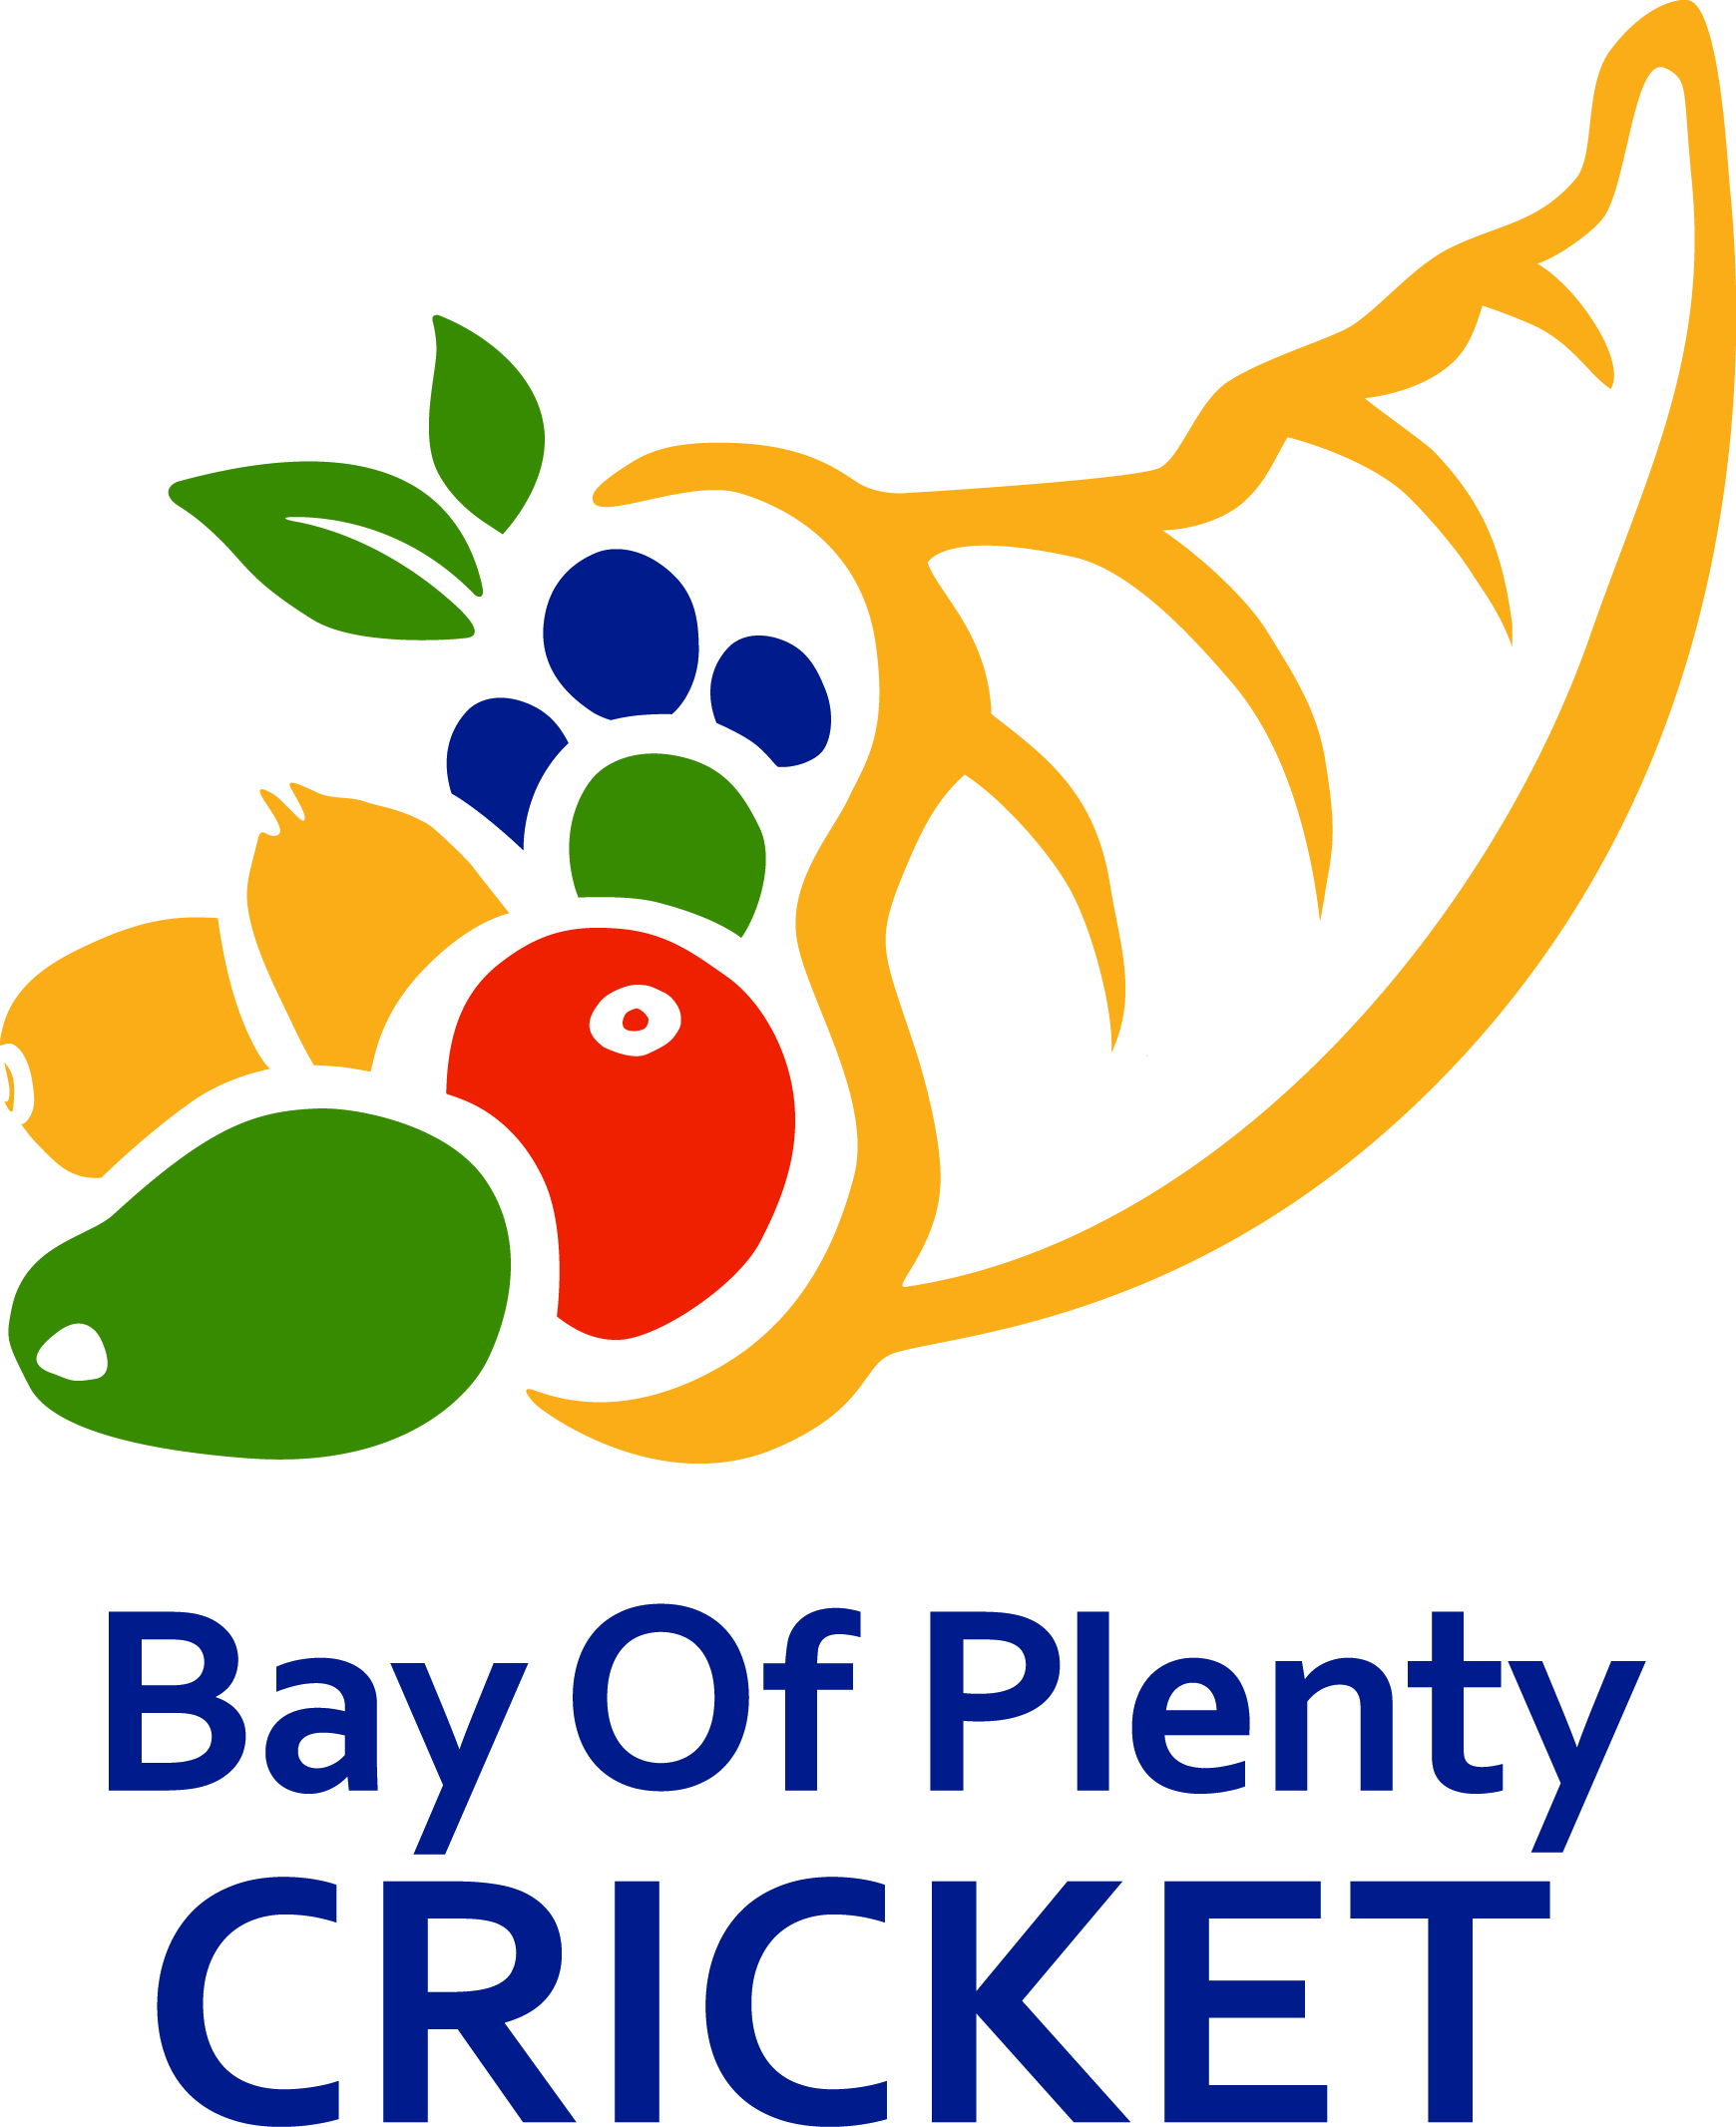 Bay of Plenty Cricket Announce Restructure